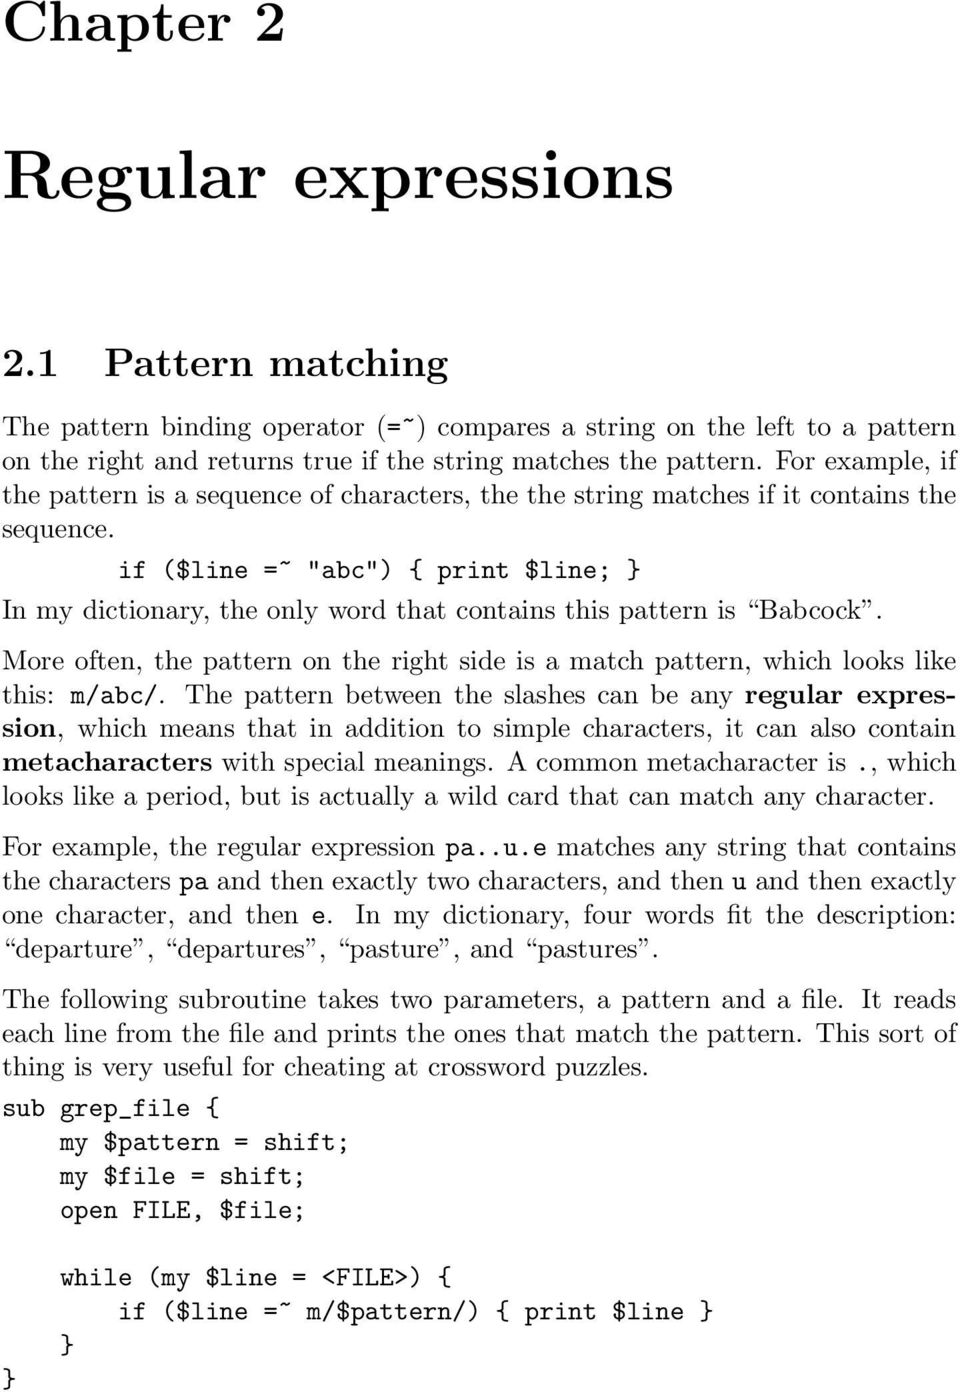 "if ($line =~ ""abc"") { print $line; In my dictionary, the only word that contains this pattern is Babcock. More often, the pattern on the right side is a match pattern, which looks like this: m/abc/."